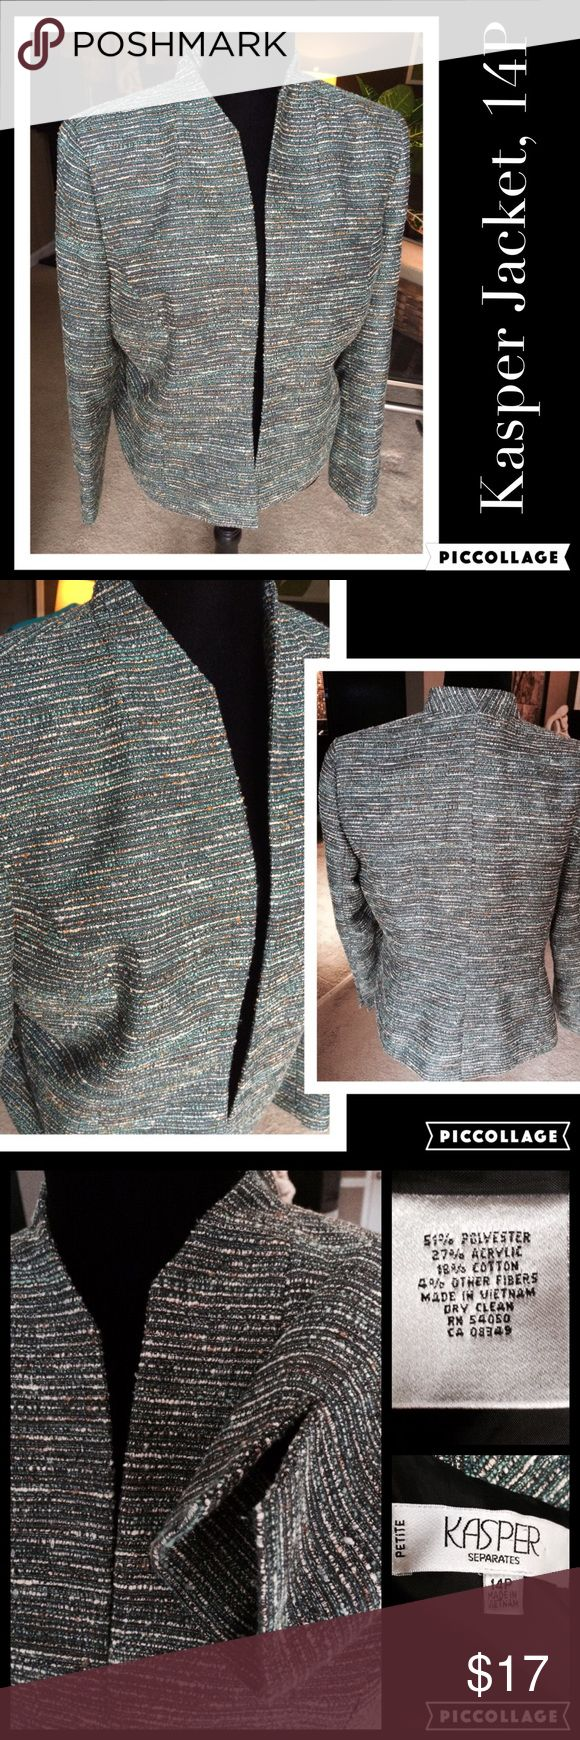 Kasper Blazer Jacket, 14P Kasper Blazer Jacket, 14P, beautiful with jeans or for work, great over cream Tee or blouse, like new, fully lined, fits to waist/upper hip, mixture of greens, creams and tan Kasper Jackets & Coats Blazers